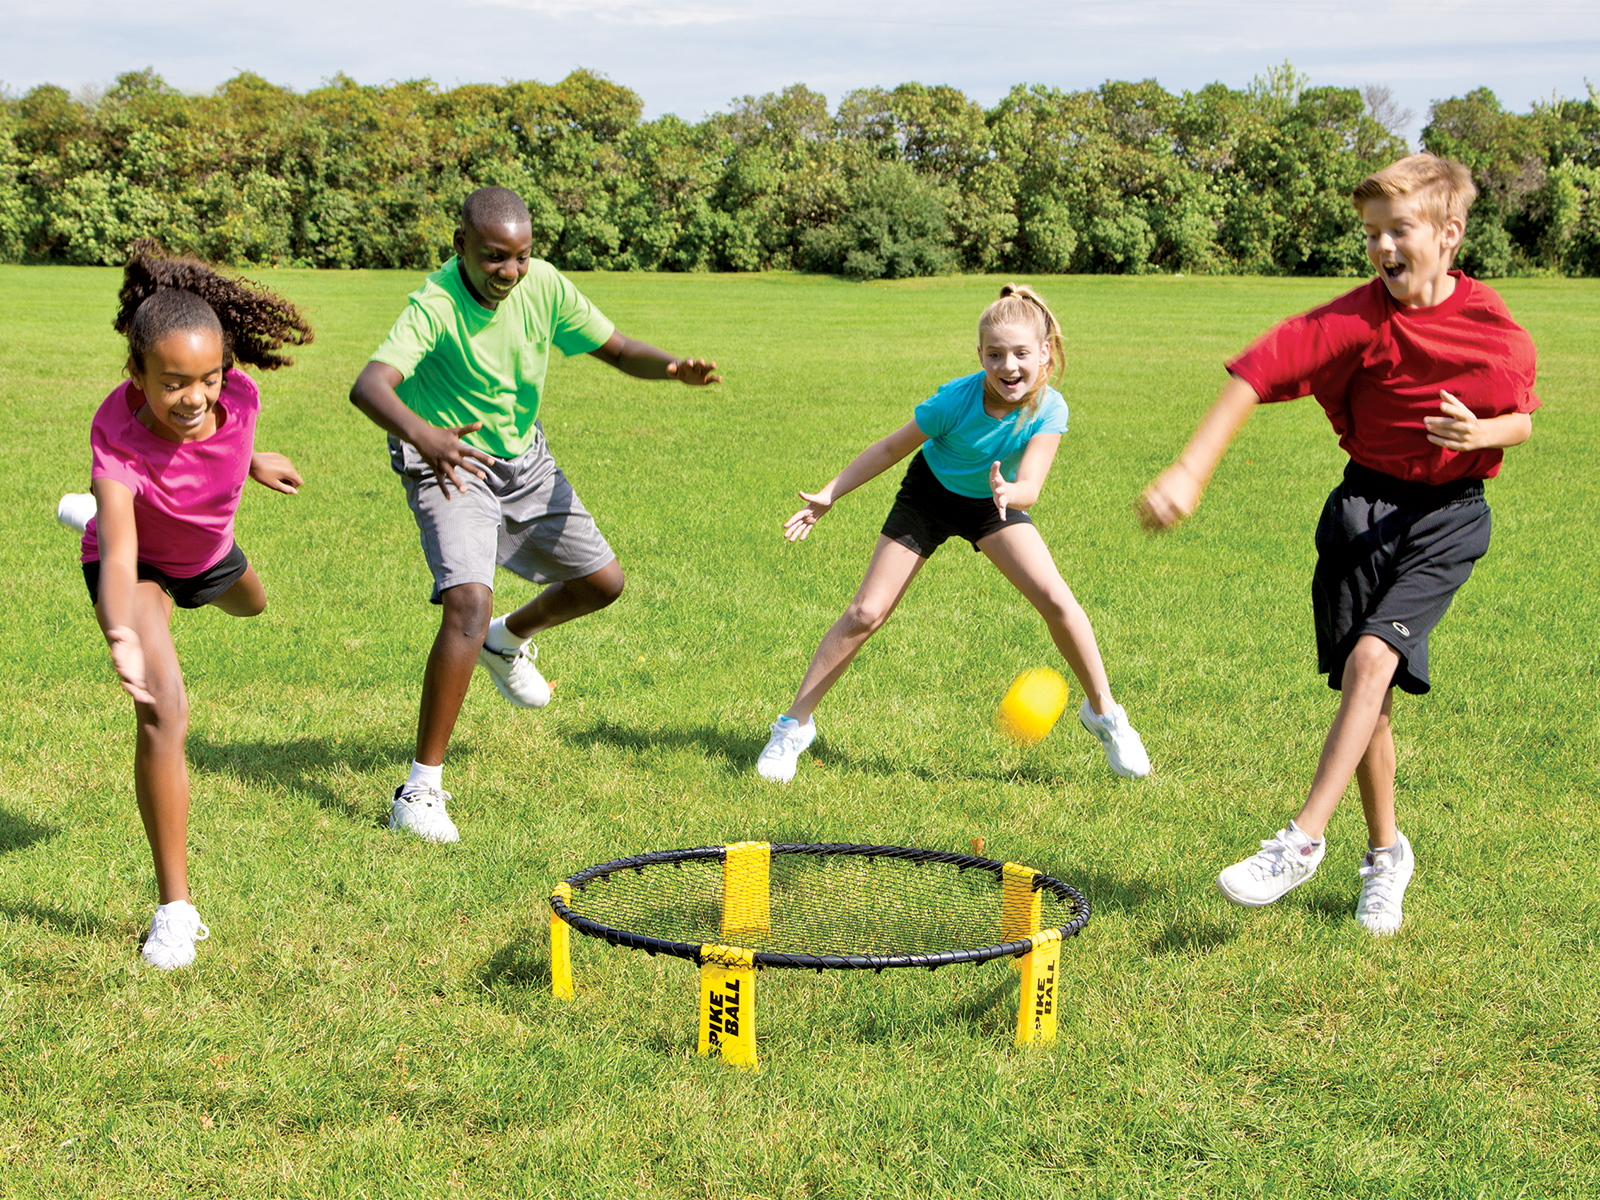 g-58196-spikeball-game-kids-outdoor-set